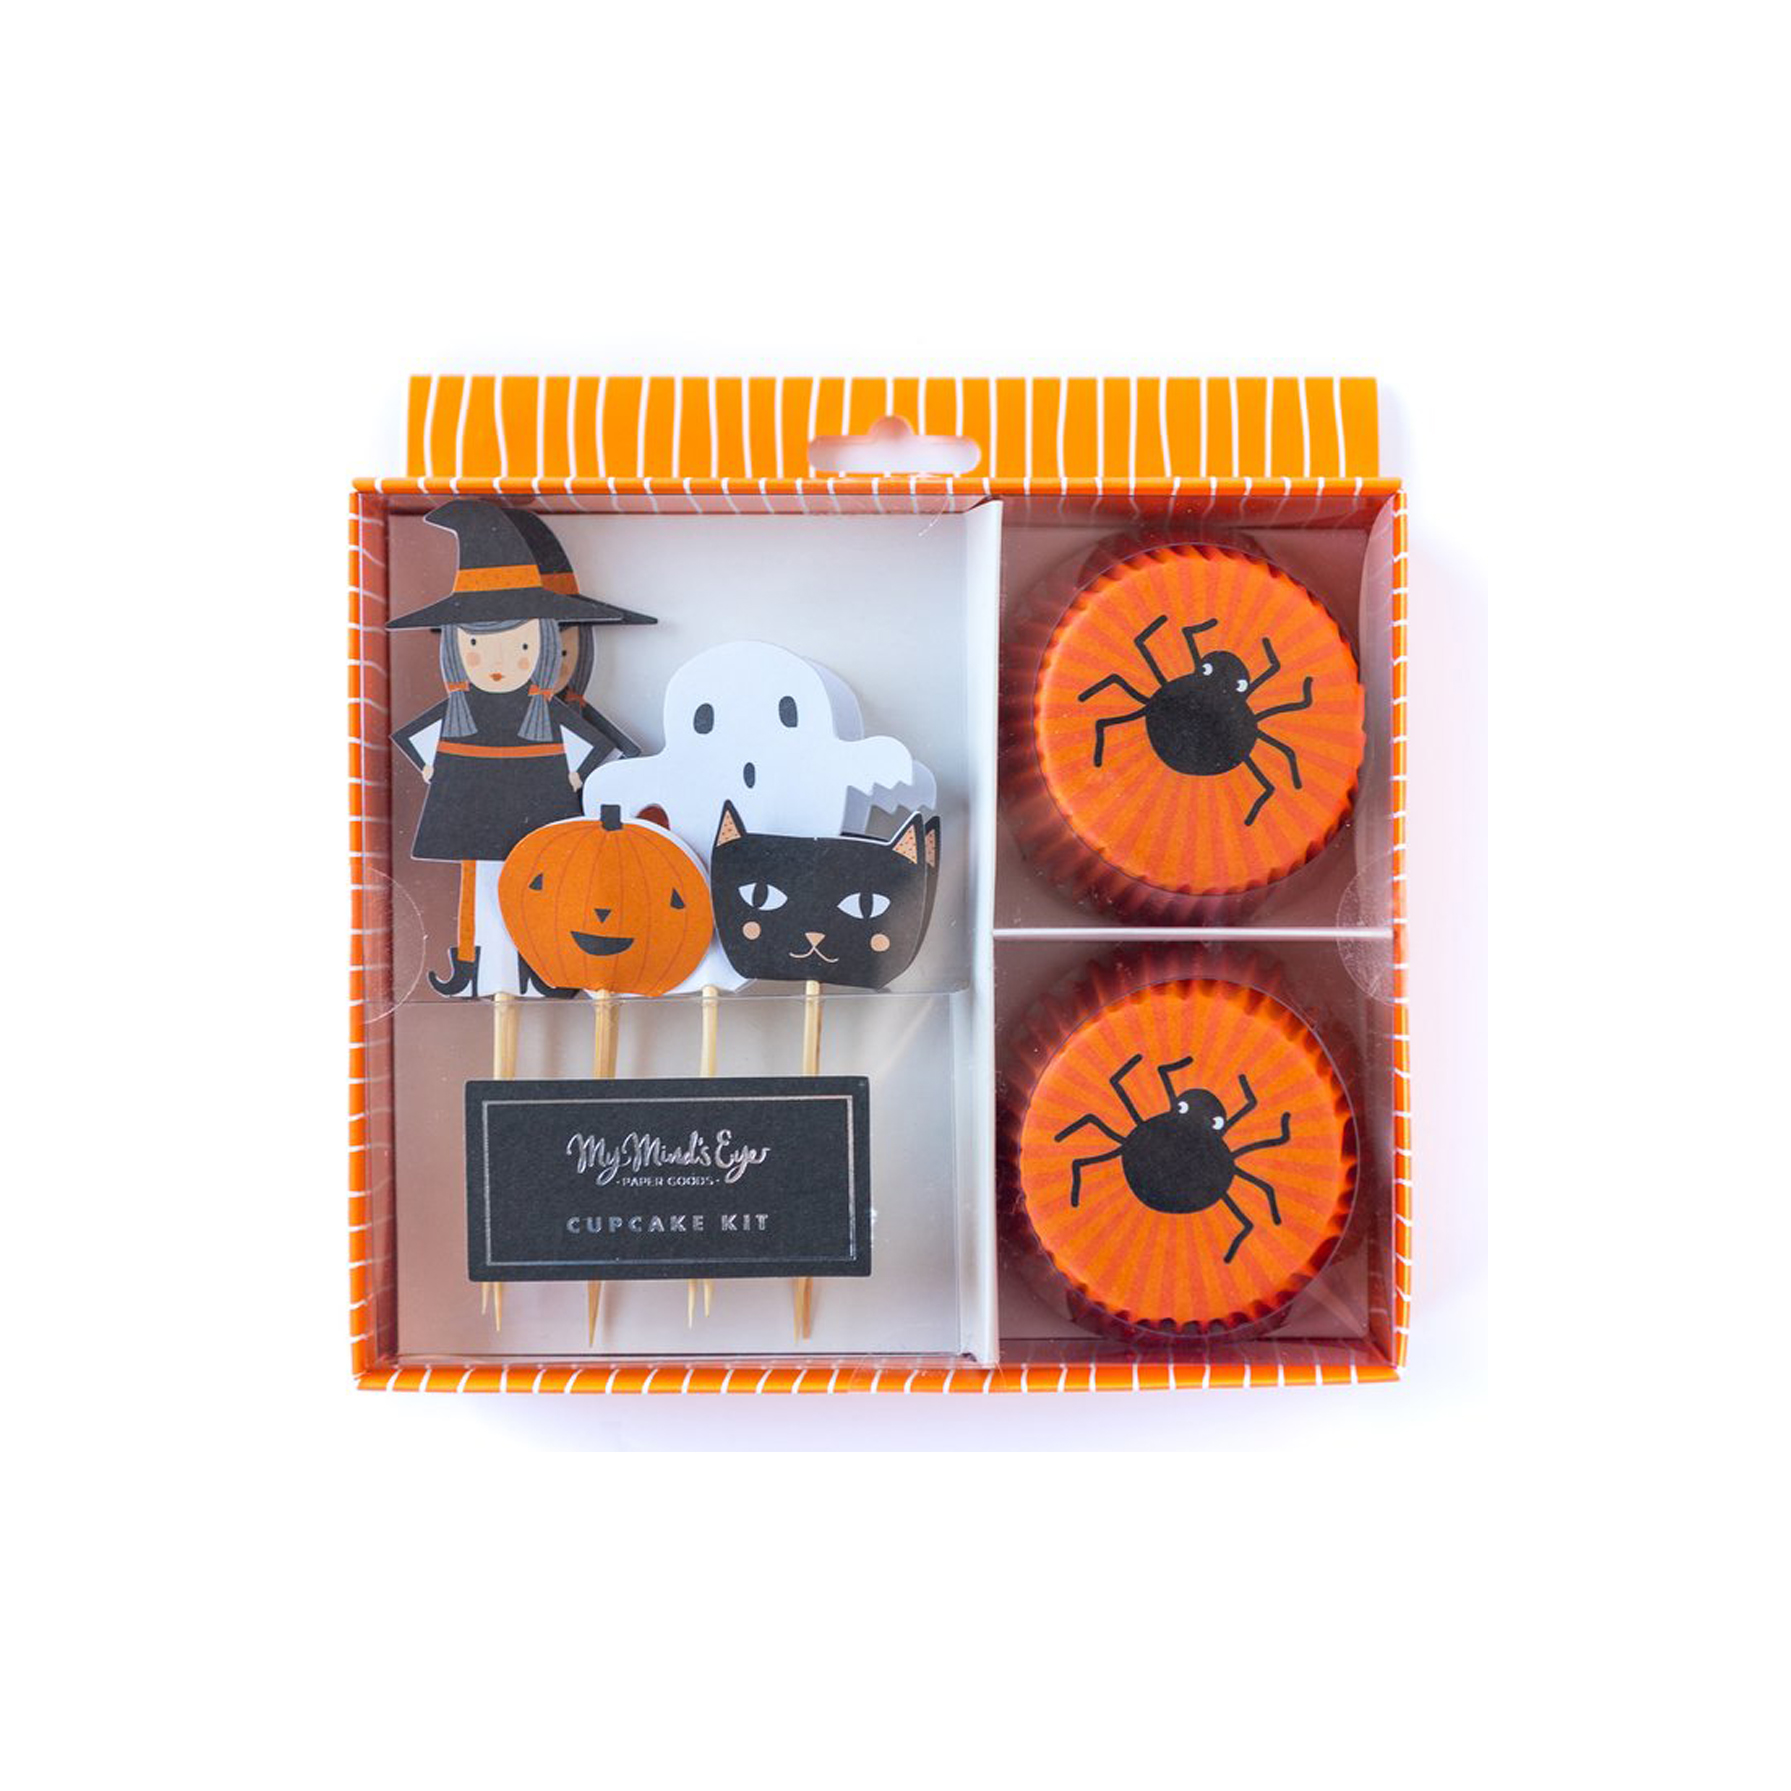 BUY ME / NEW ITEM $12.99 each Halloween Cupcake Kit Pack of 24 Liners + Toppers